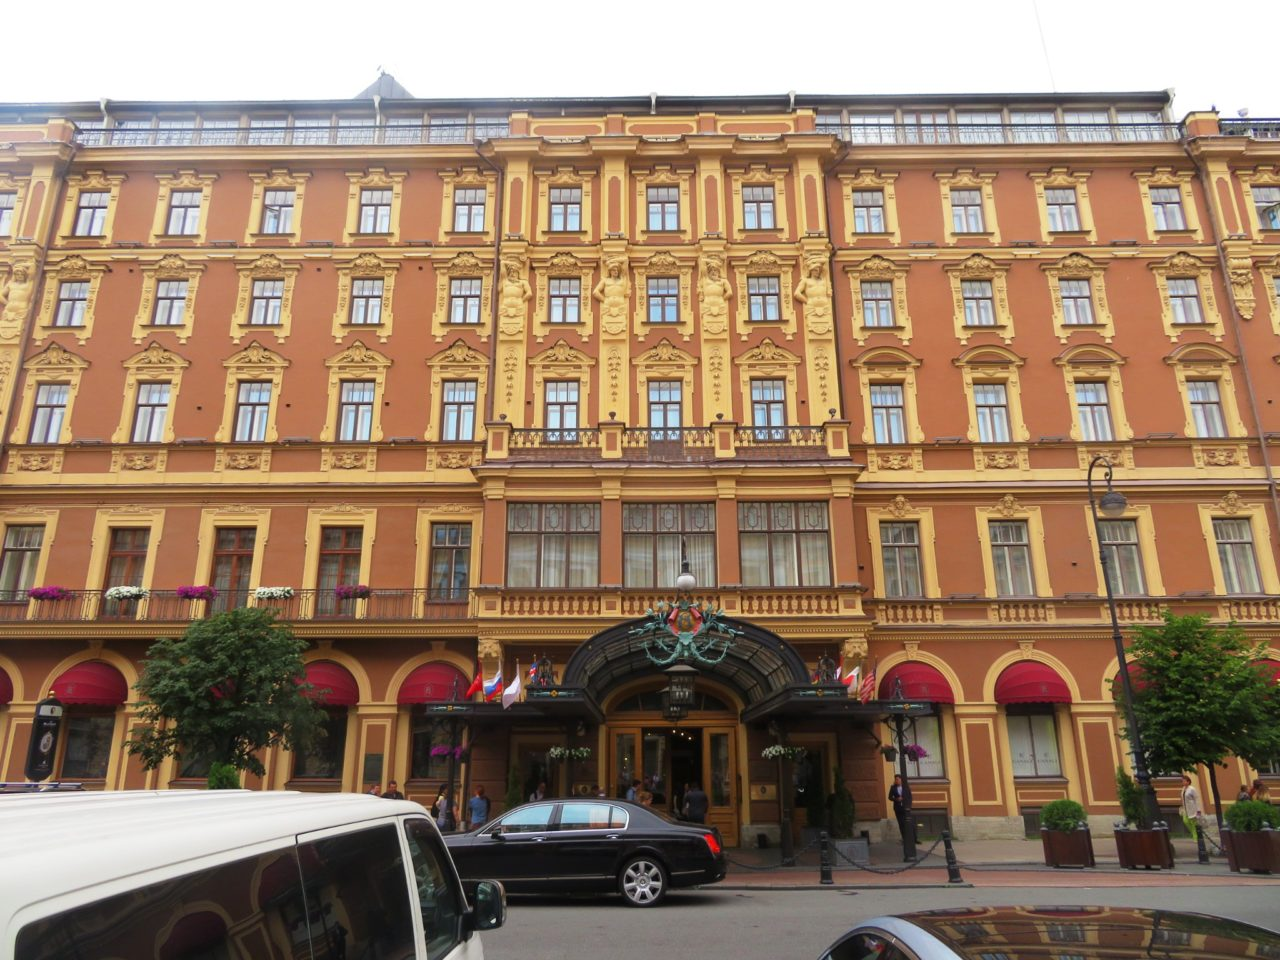 The Belmond Grand Hotel Europe in St. Petersburg, Russia